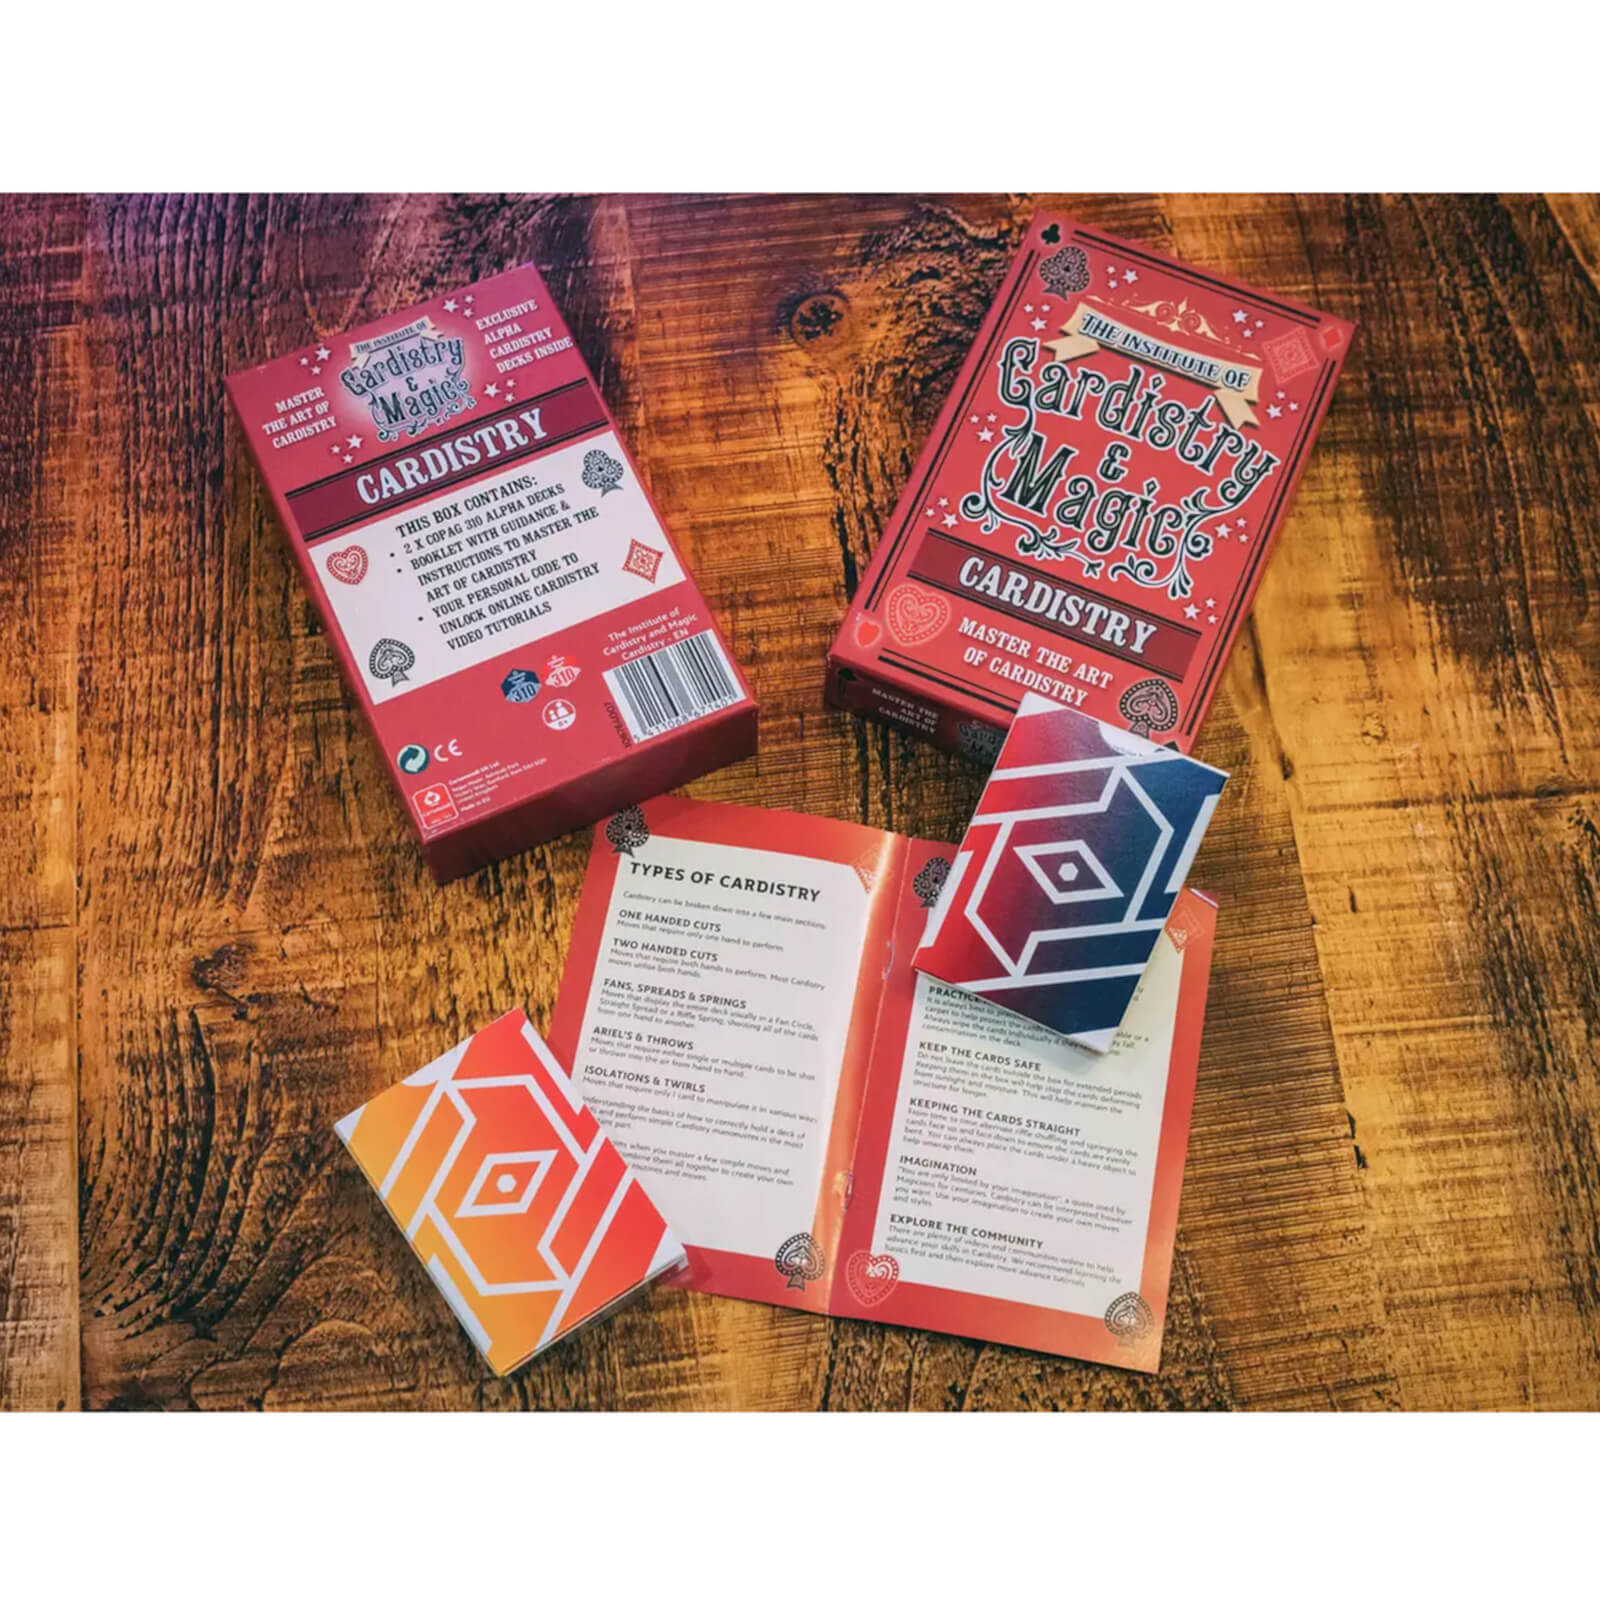 Image of The Institute of Cardistry & Magic - Cardistry